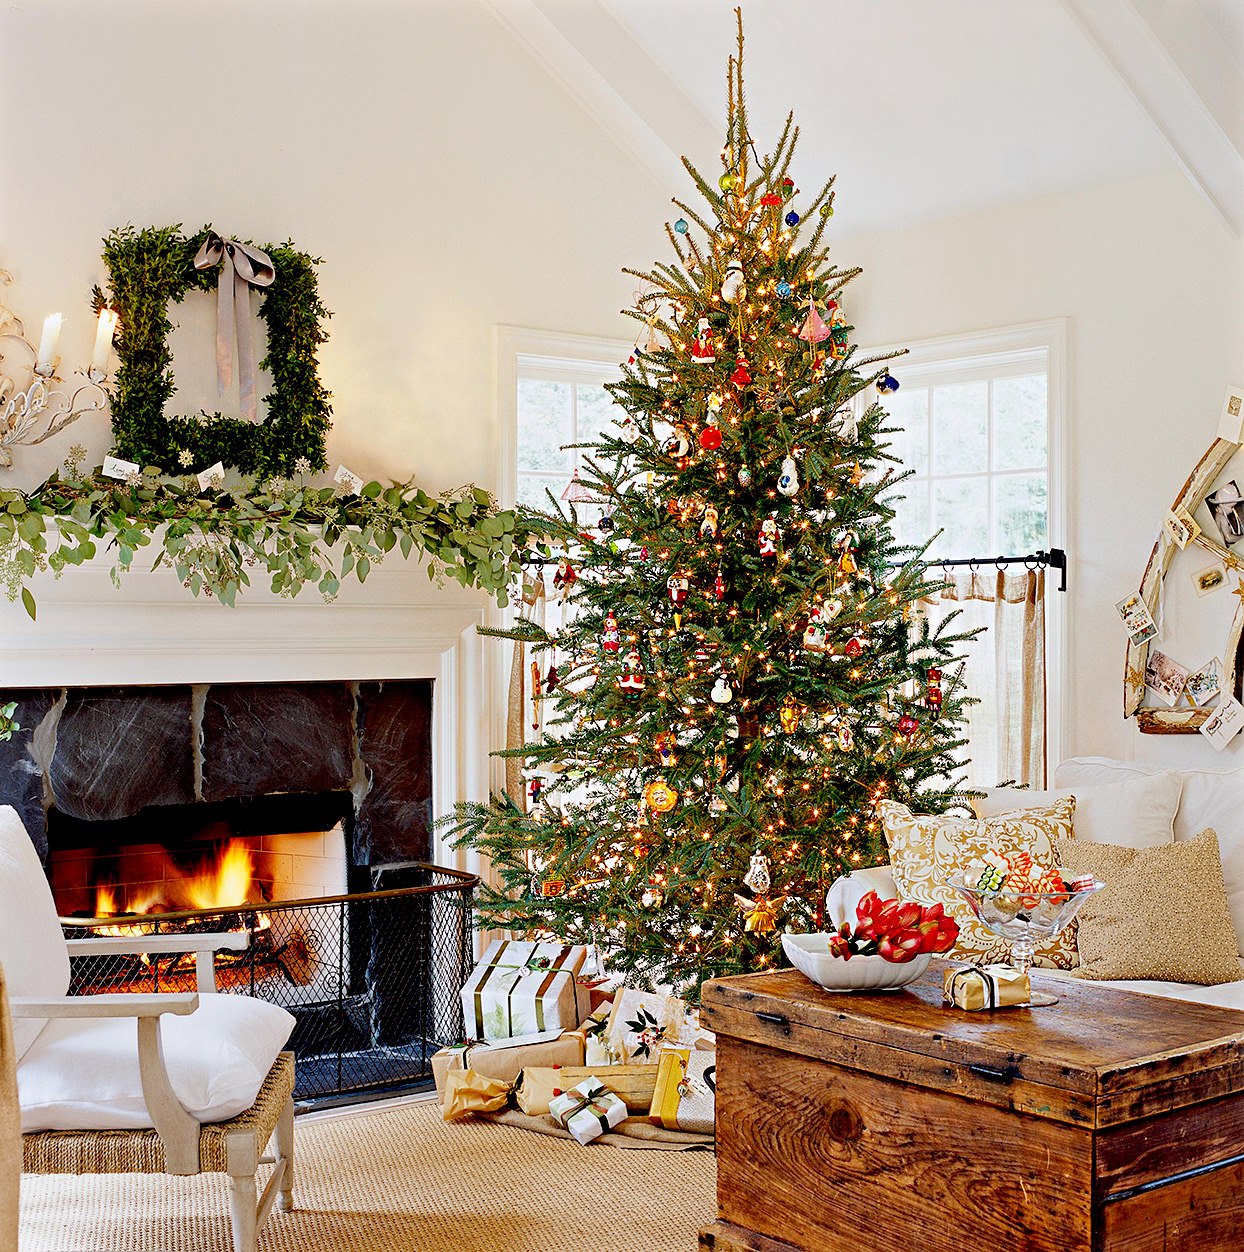 Living room with Christmas tree and decorated mantle